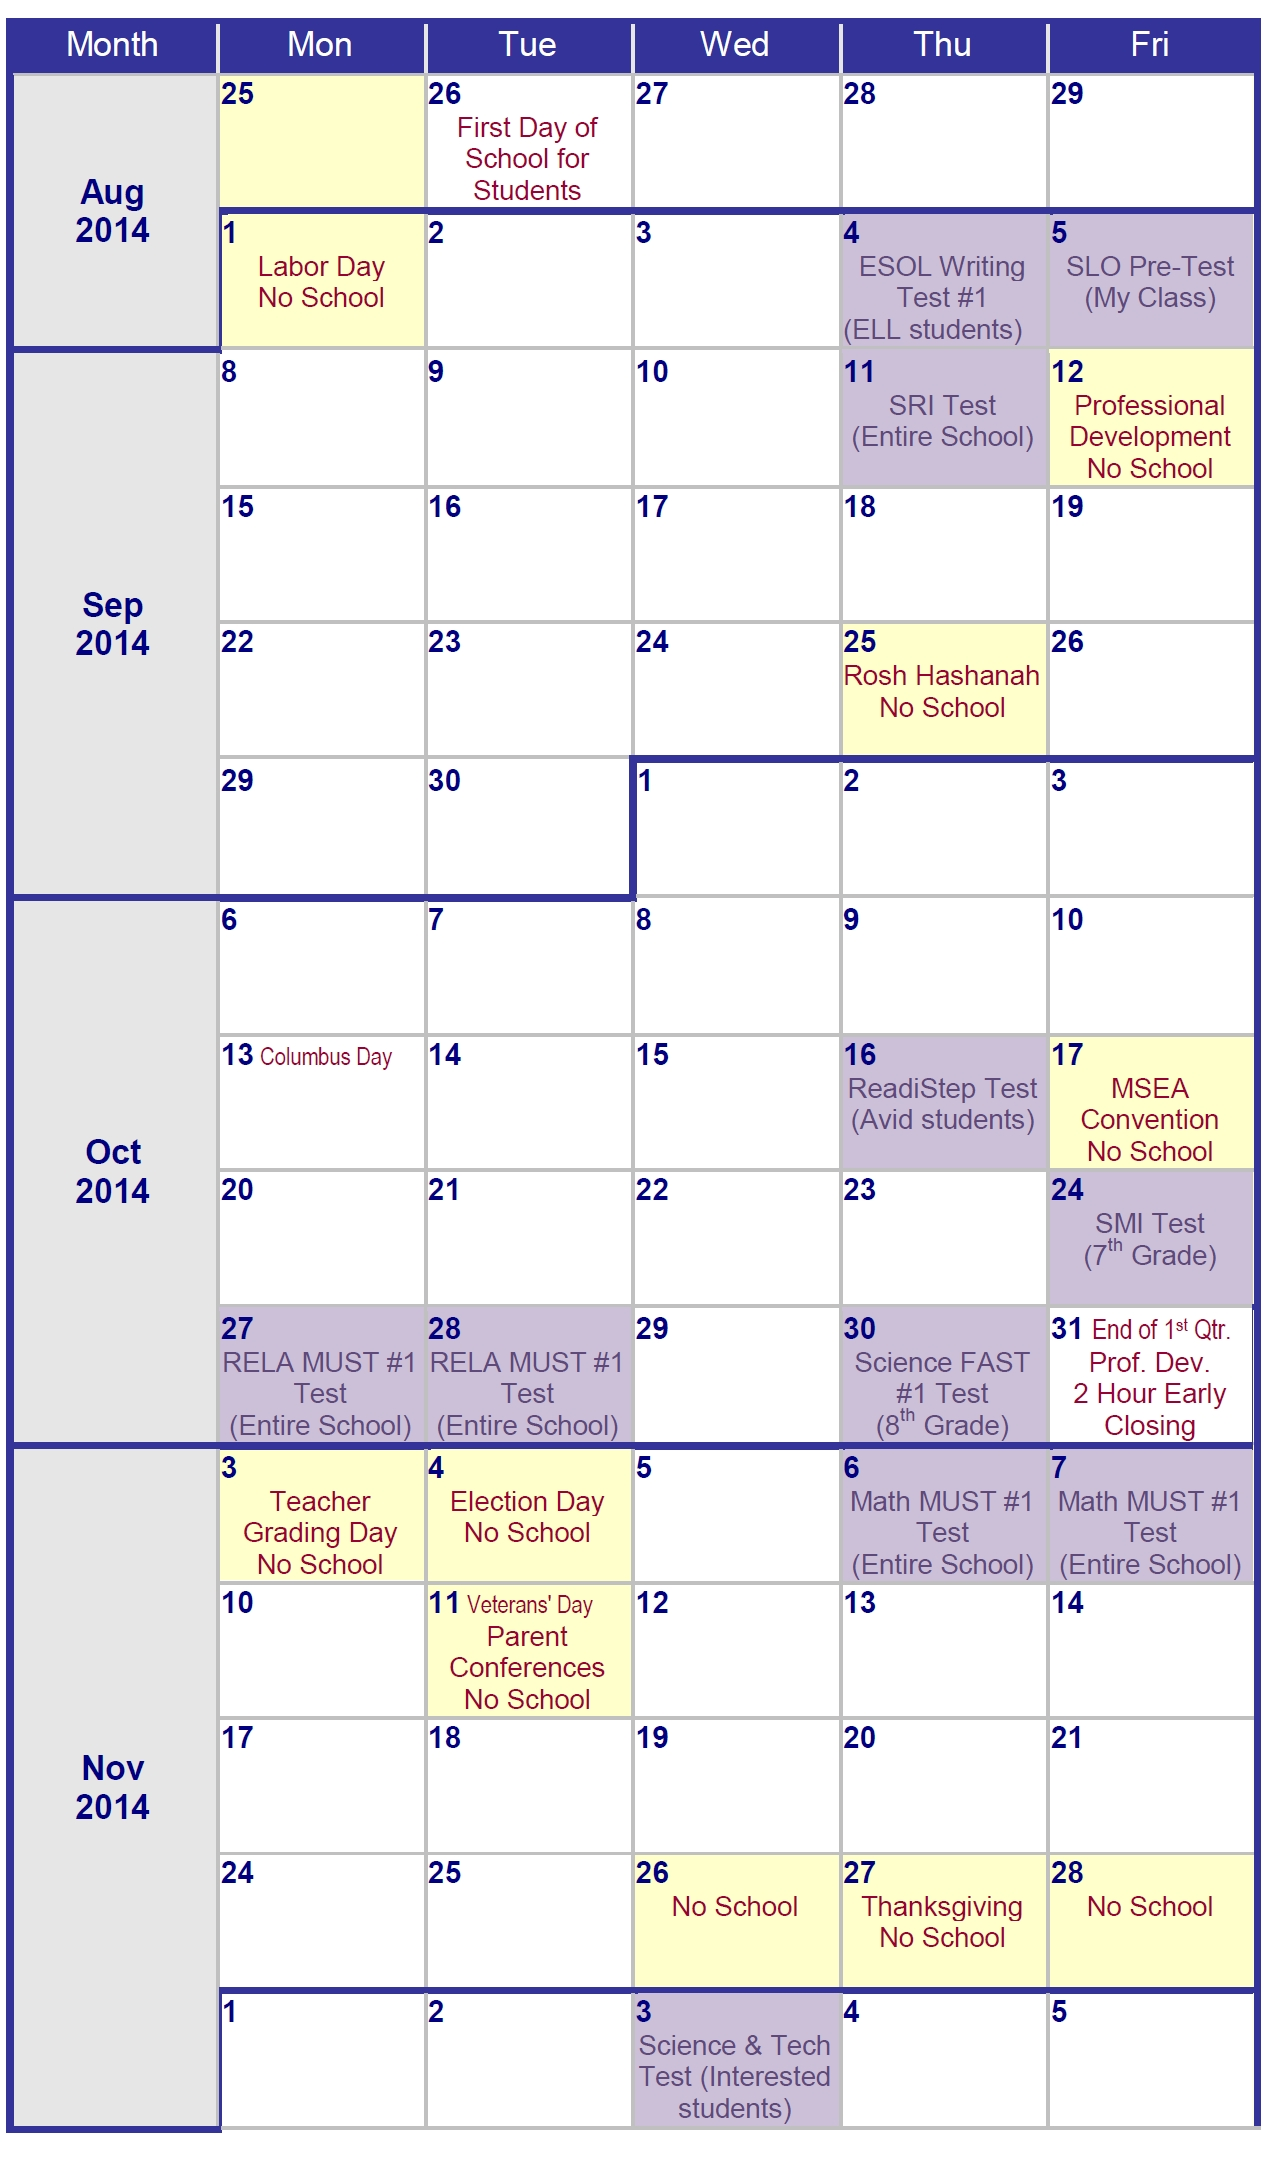 One Local Middle School's Testing Calendar – Prince George's County_P.g. County School Calendar